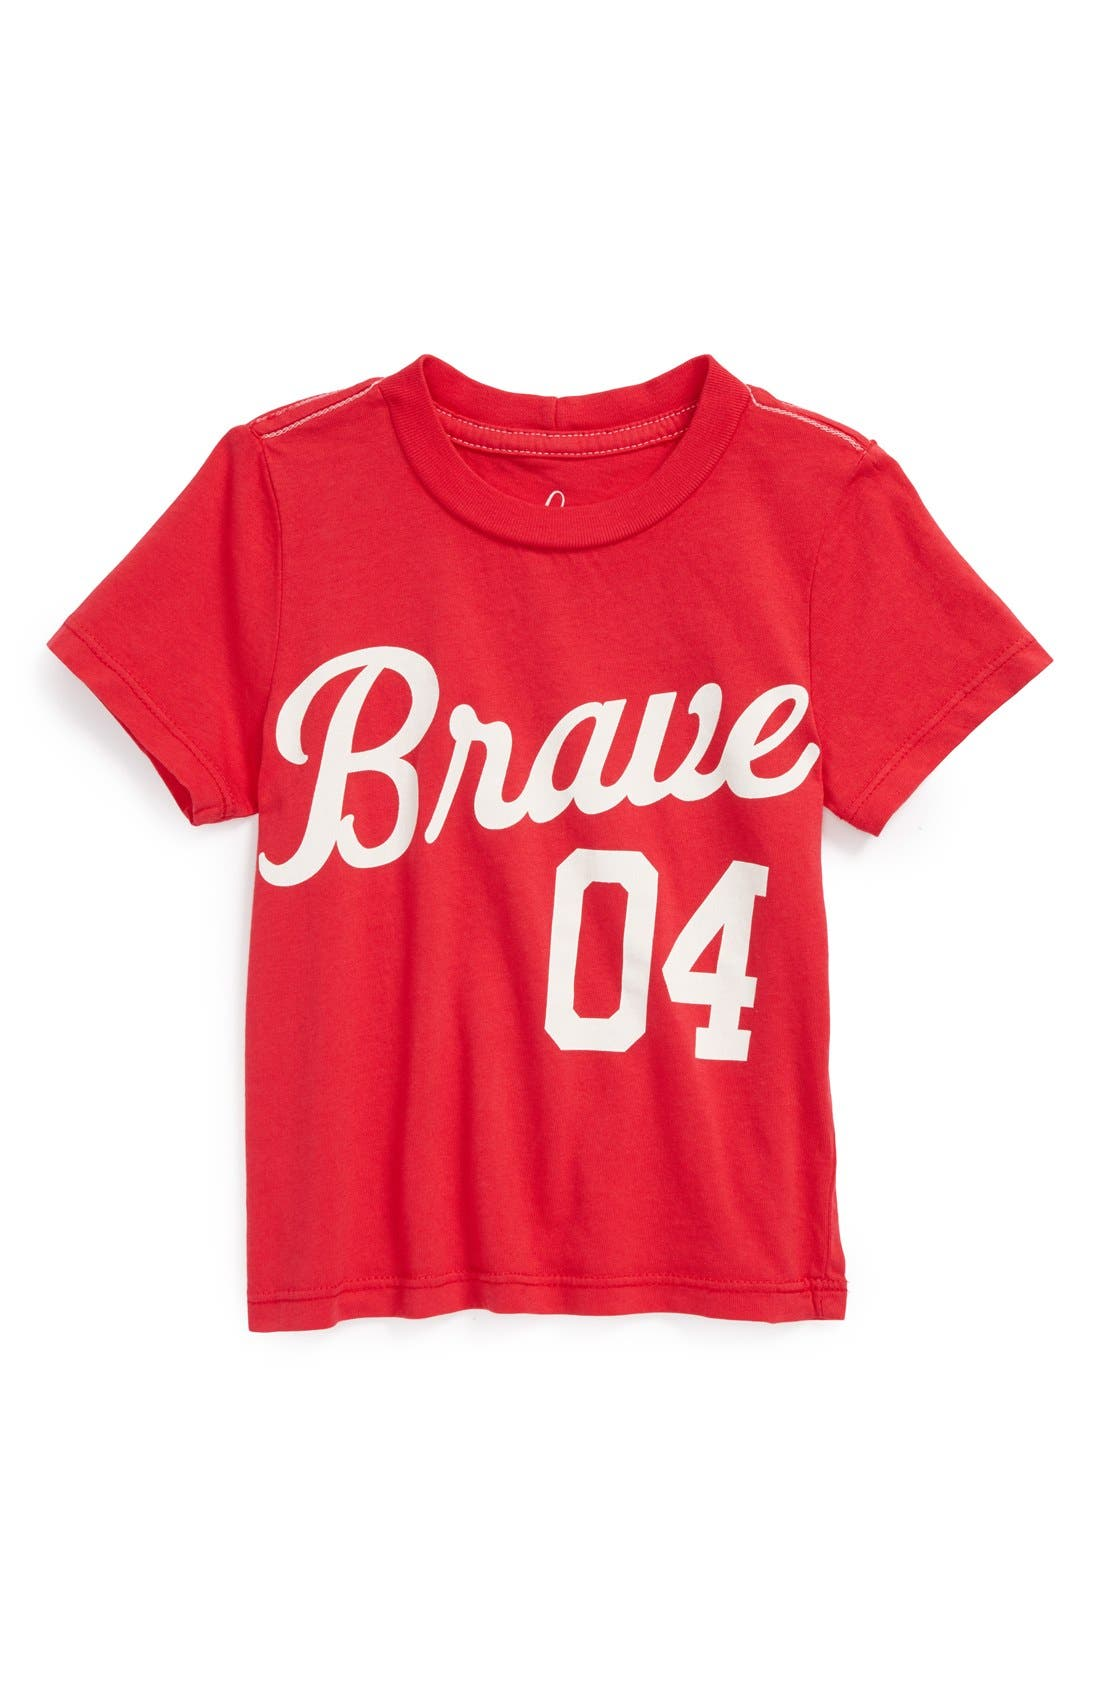 Alternate Image 1 Selected - Peek 'Brave' T-Shirt (Baby Boys)